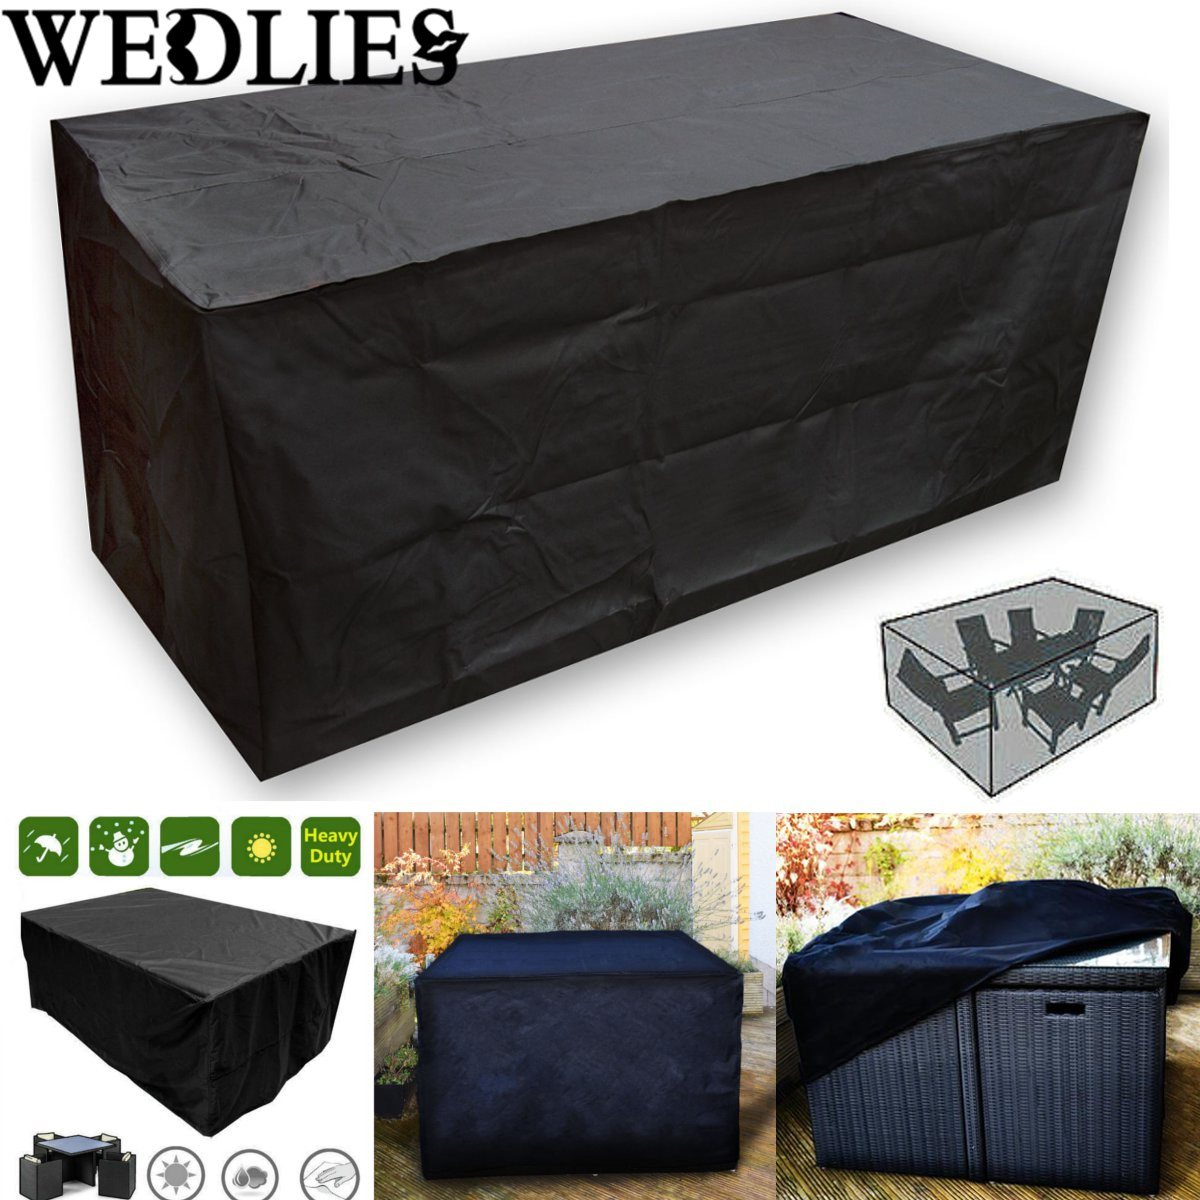 Black waterproof outdoor patio furniture set cover garden for Outdoor furniture covers in black